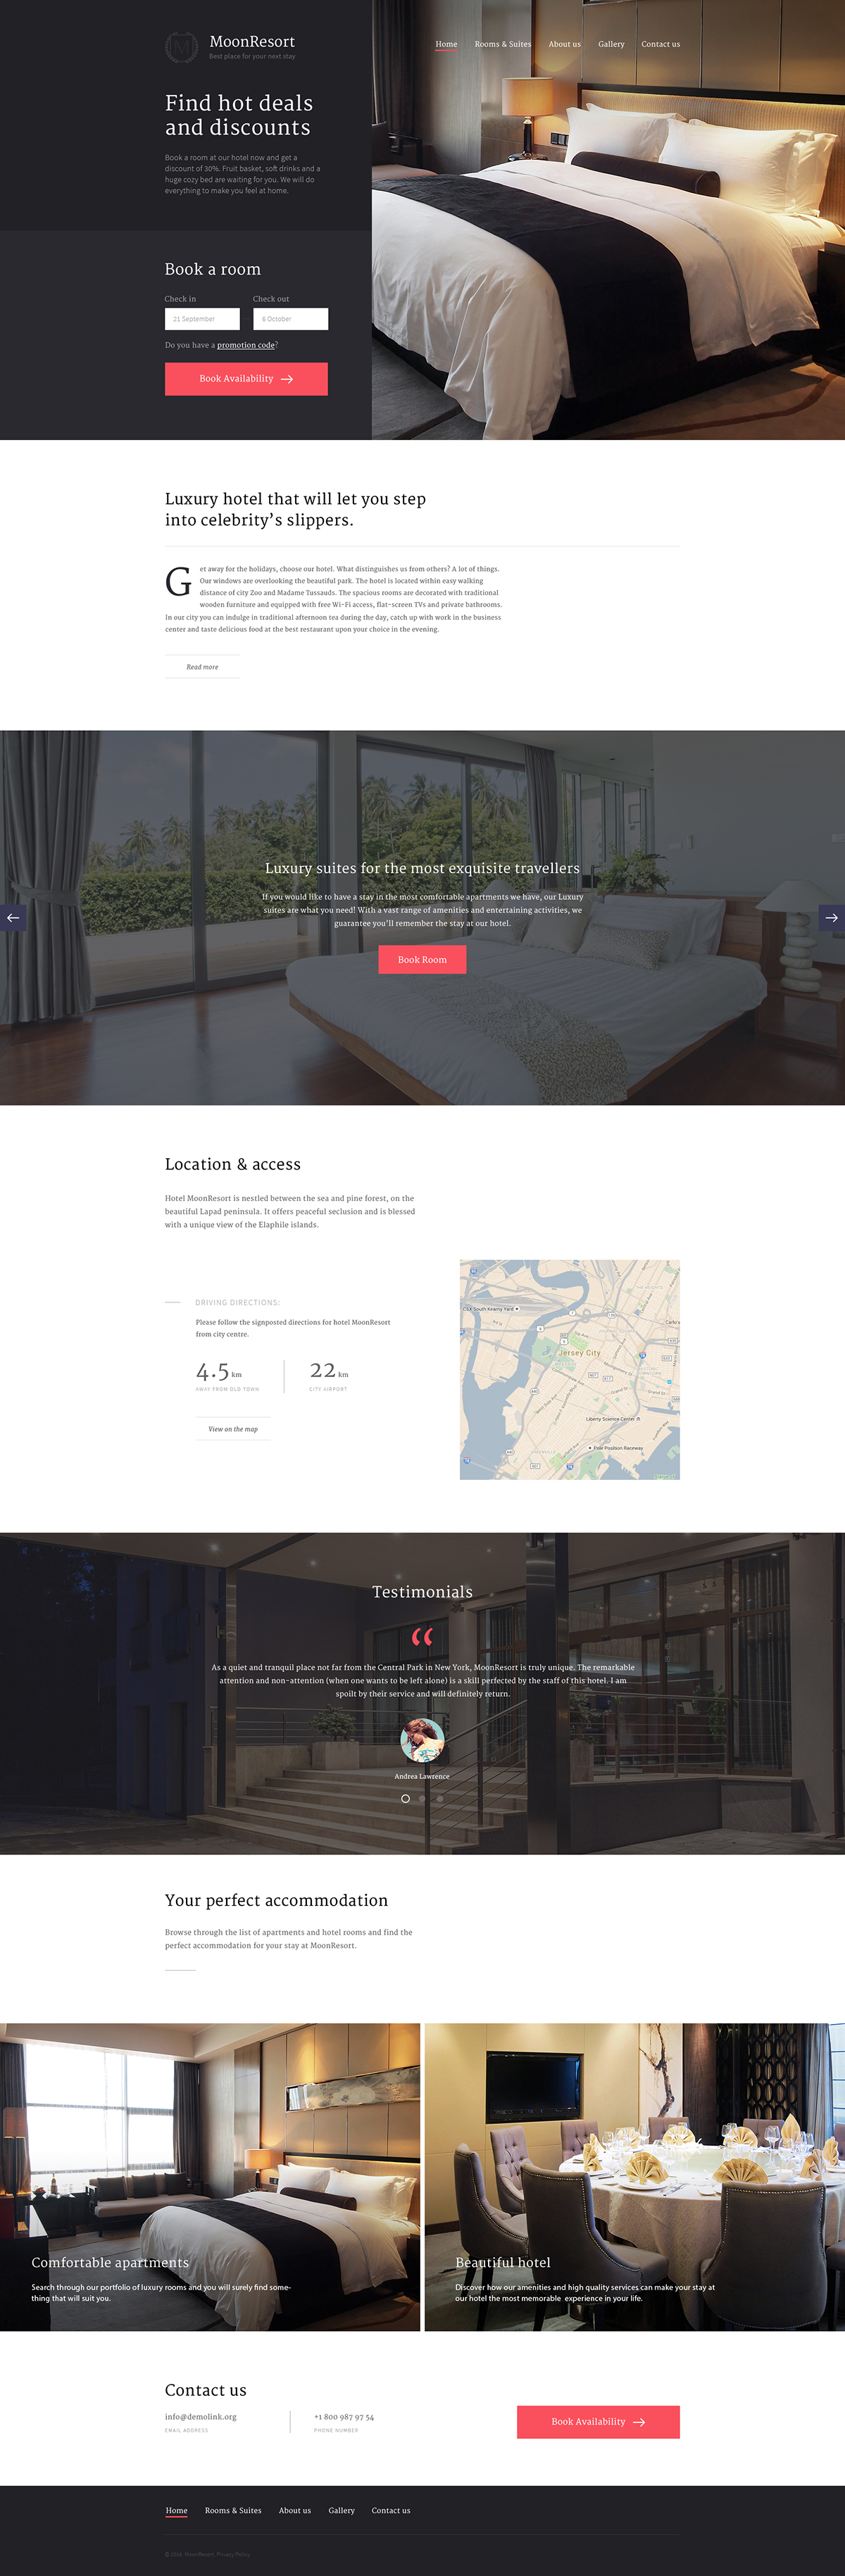 MoonResort Website Template - $69 on Behance | diseño | Pinterest ...